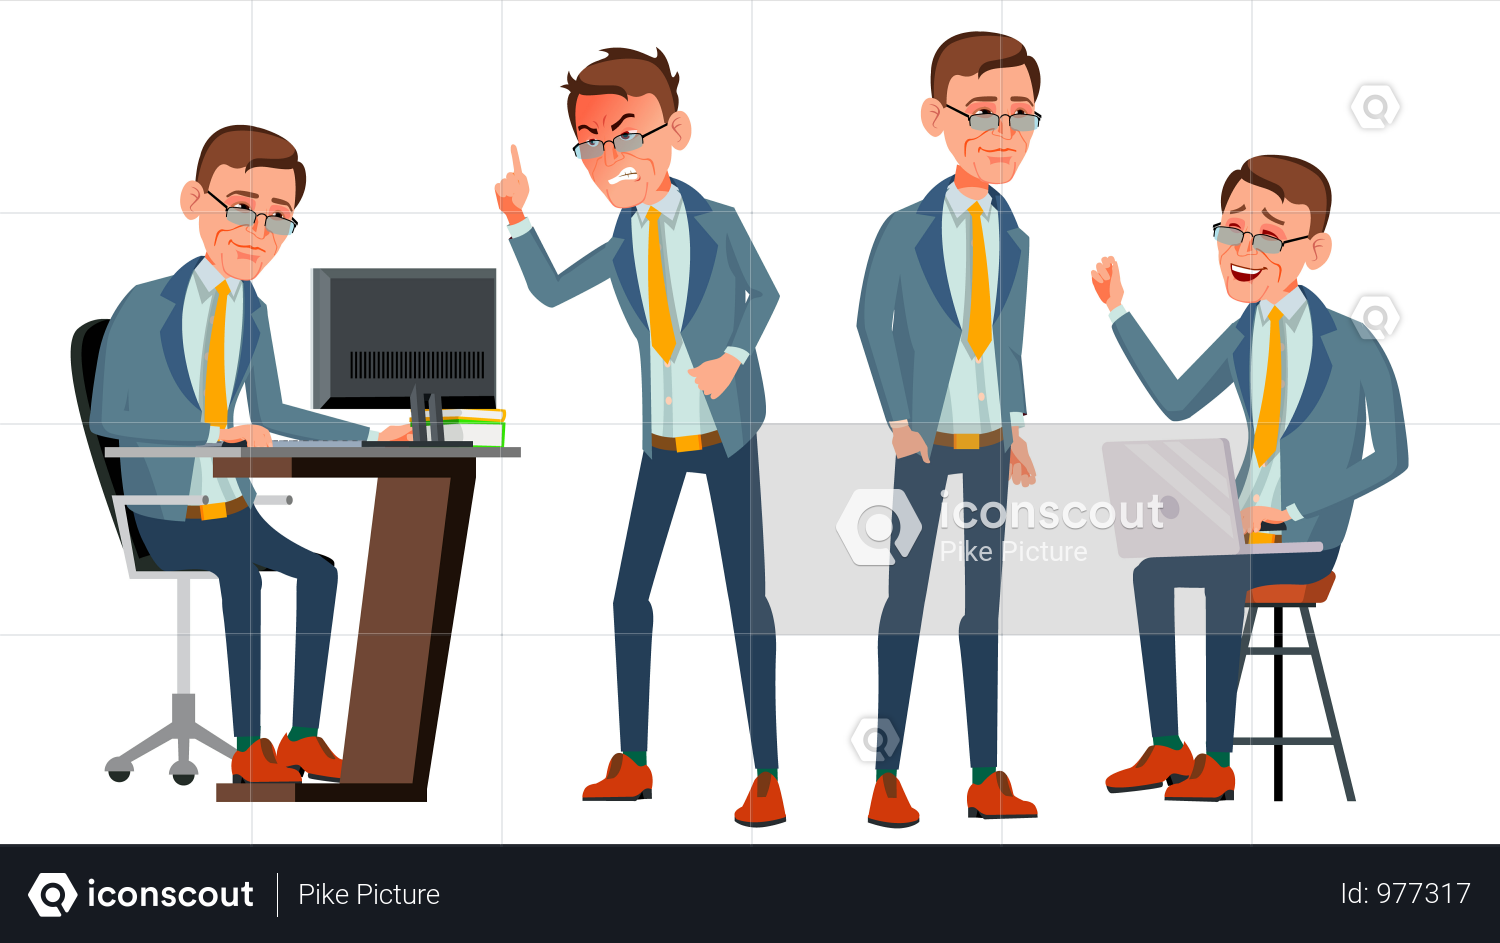 Premium Office Worker With Working Gesture Illustration Download In Png Vector Format Illustration Cute Illustration Character Illustration